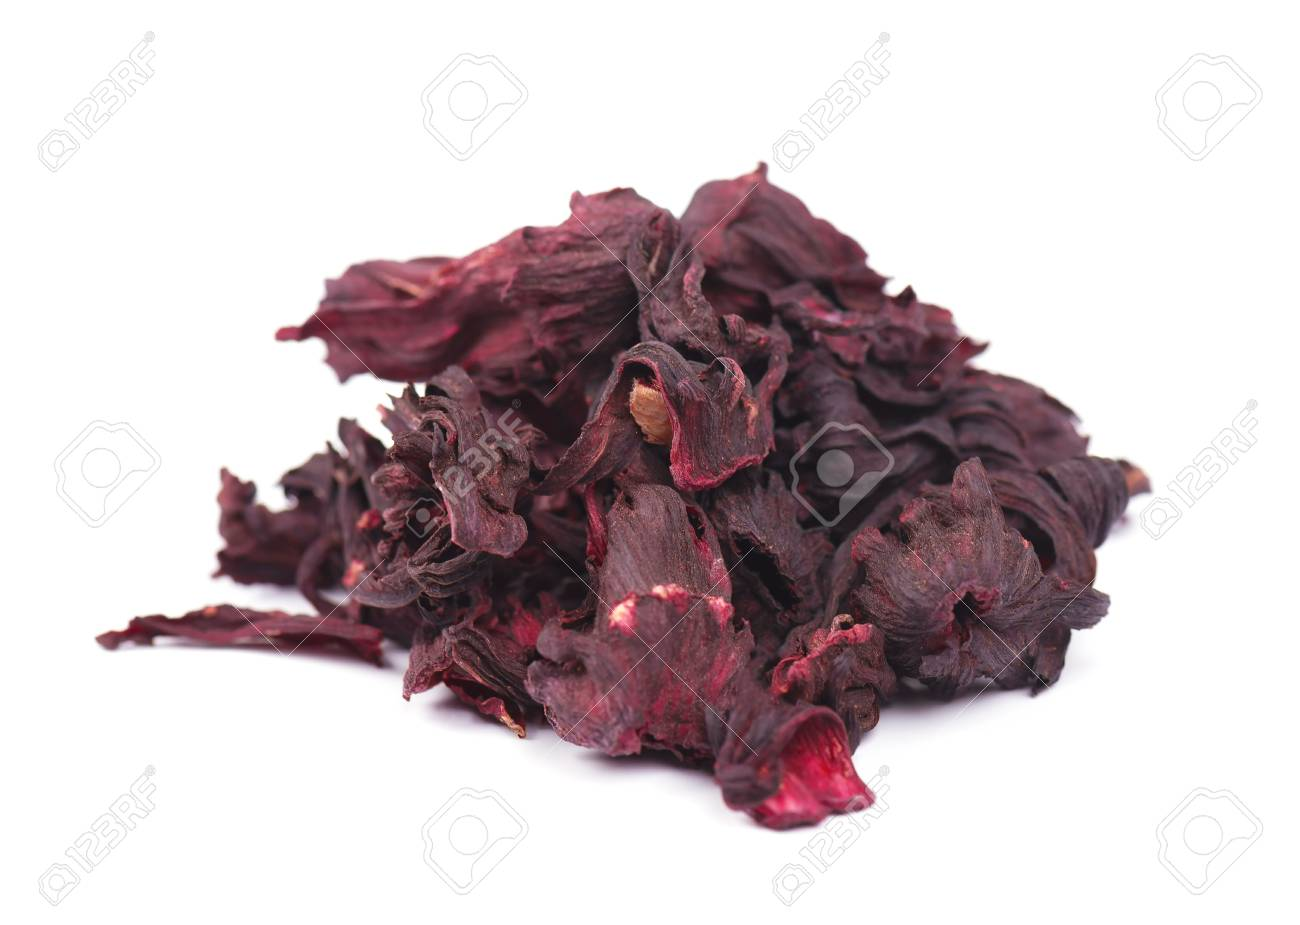 Dried Hibiscus Flowers Hibiscus Tea Close Up Isolated On White